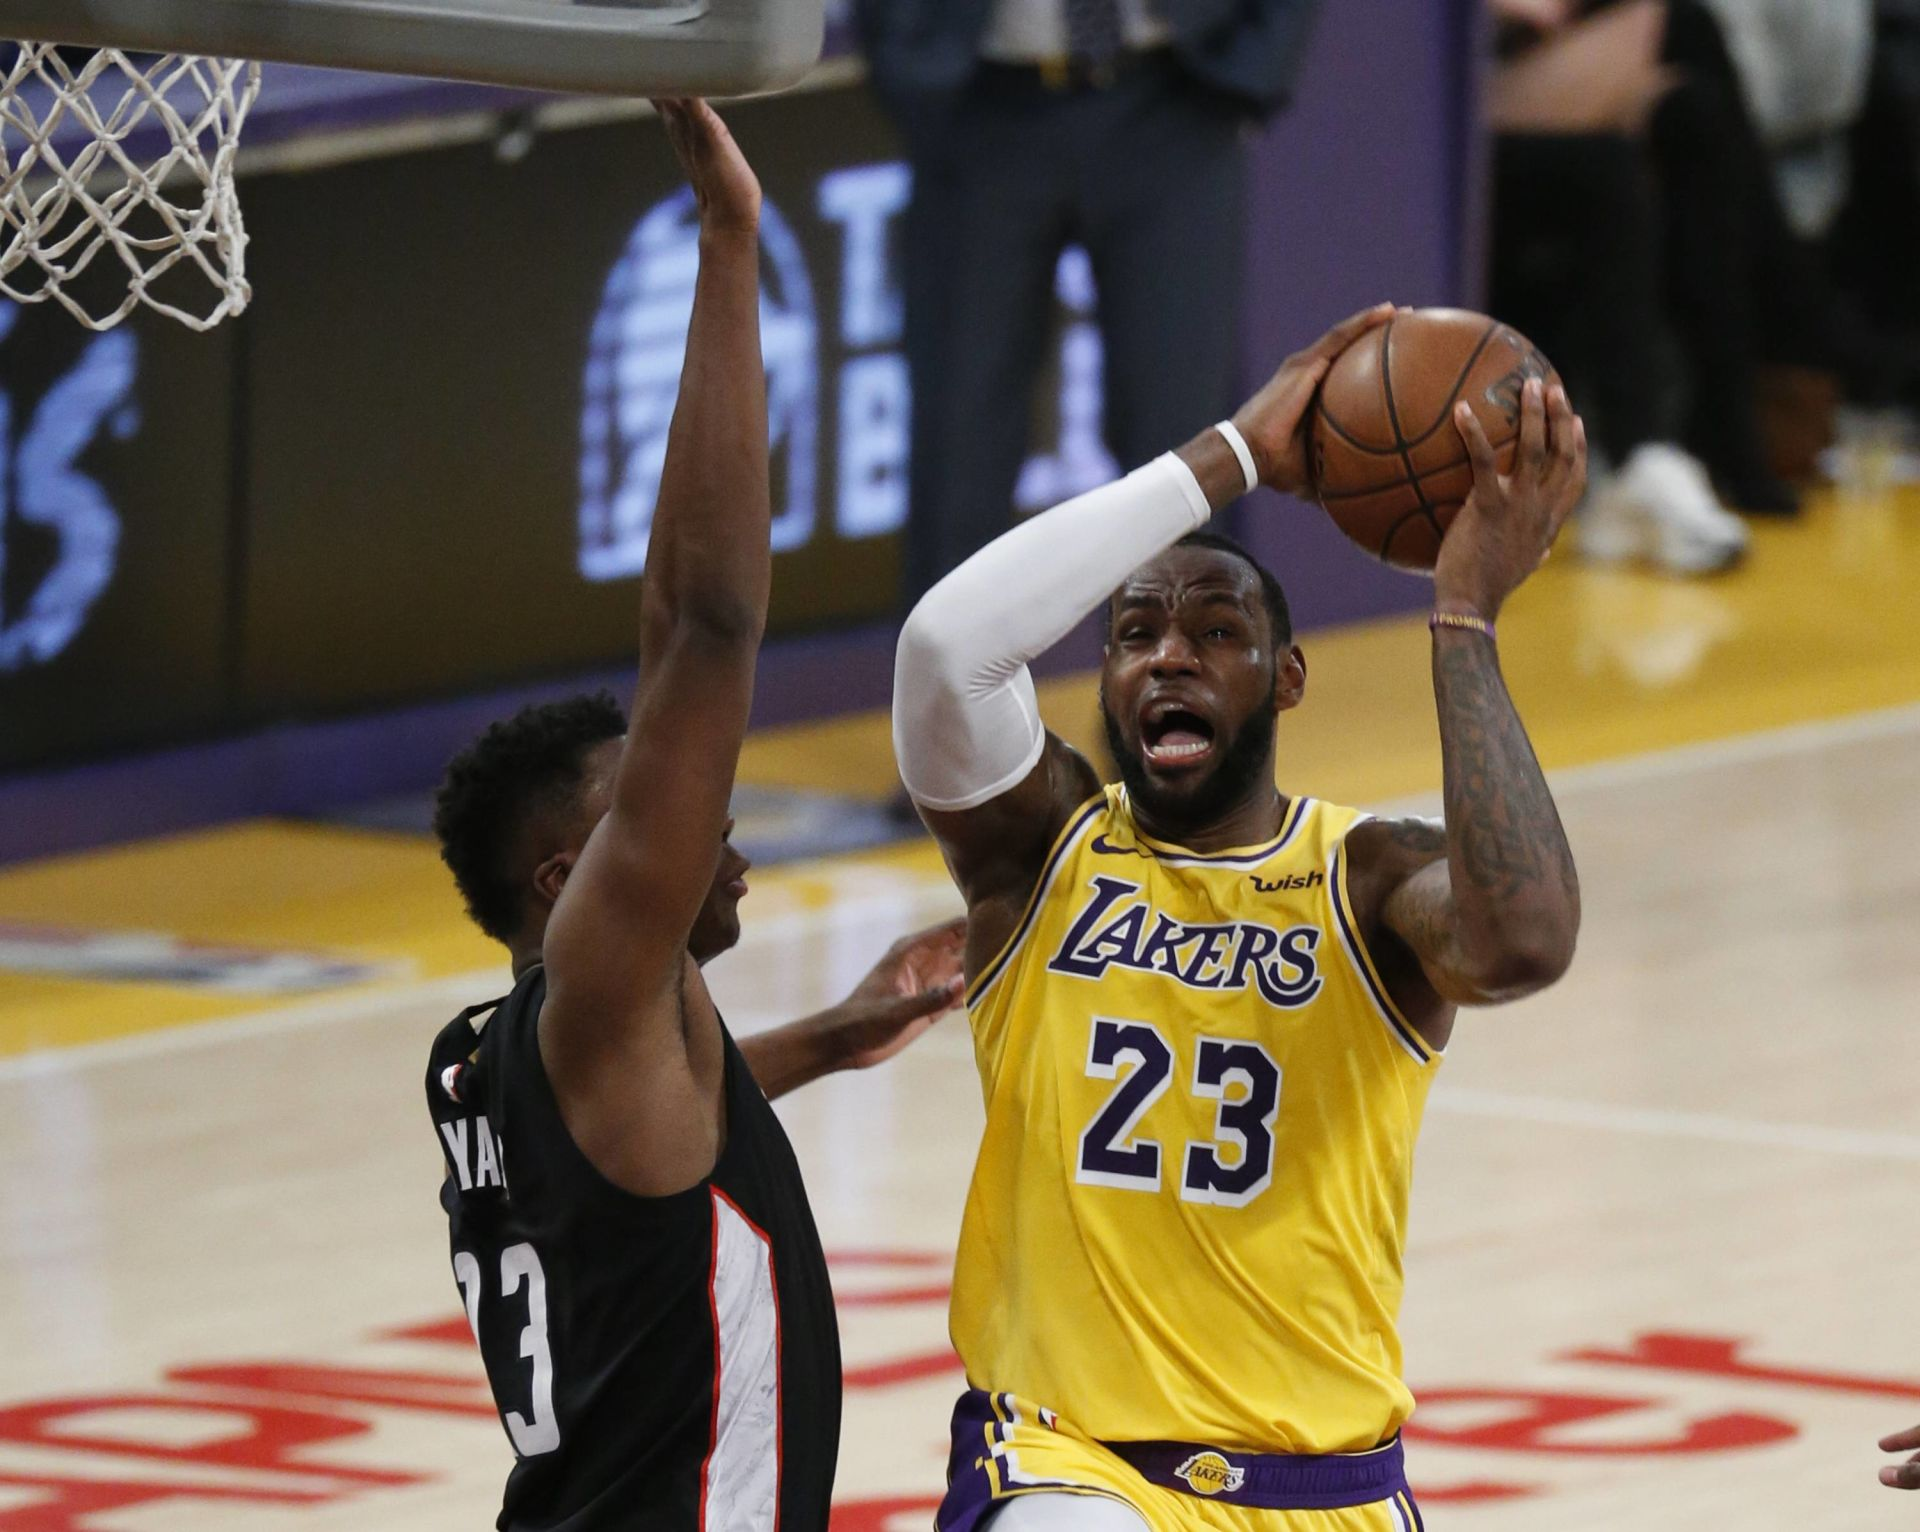 March 26, 2019 - Los Angeles, California, U.S - Los Angeles Lakers  LeBron James (23) goes to basket while defended by Washington Wizards' Thomas Bryant (13) in an NBA basketball game between Los Angeles Lakers and Washington Wizards, Tuesday, March 26, 2019, in Los Angeles. (Credit Image: © Ringo Chiu/ZUMA Wire)  NBA KOSZYKOWKA MEZCZYZN FOT. ZUMA/NEWSPIX.PL POLAND ONLY! --- Newspix.pl *** Local Caption *** www.newspix.pl  mail us: info@newspix.pl call us: 0048 022 23 22 222 --- Polish Picture Agency by Ringier Axel Springer Poland